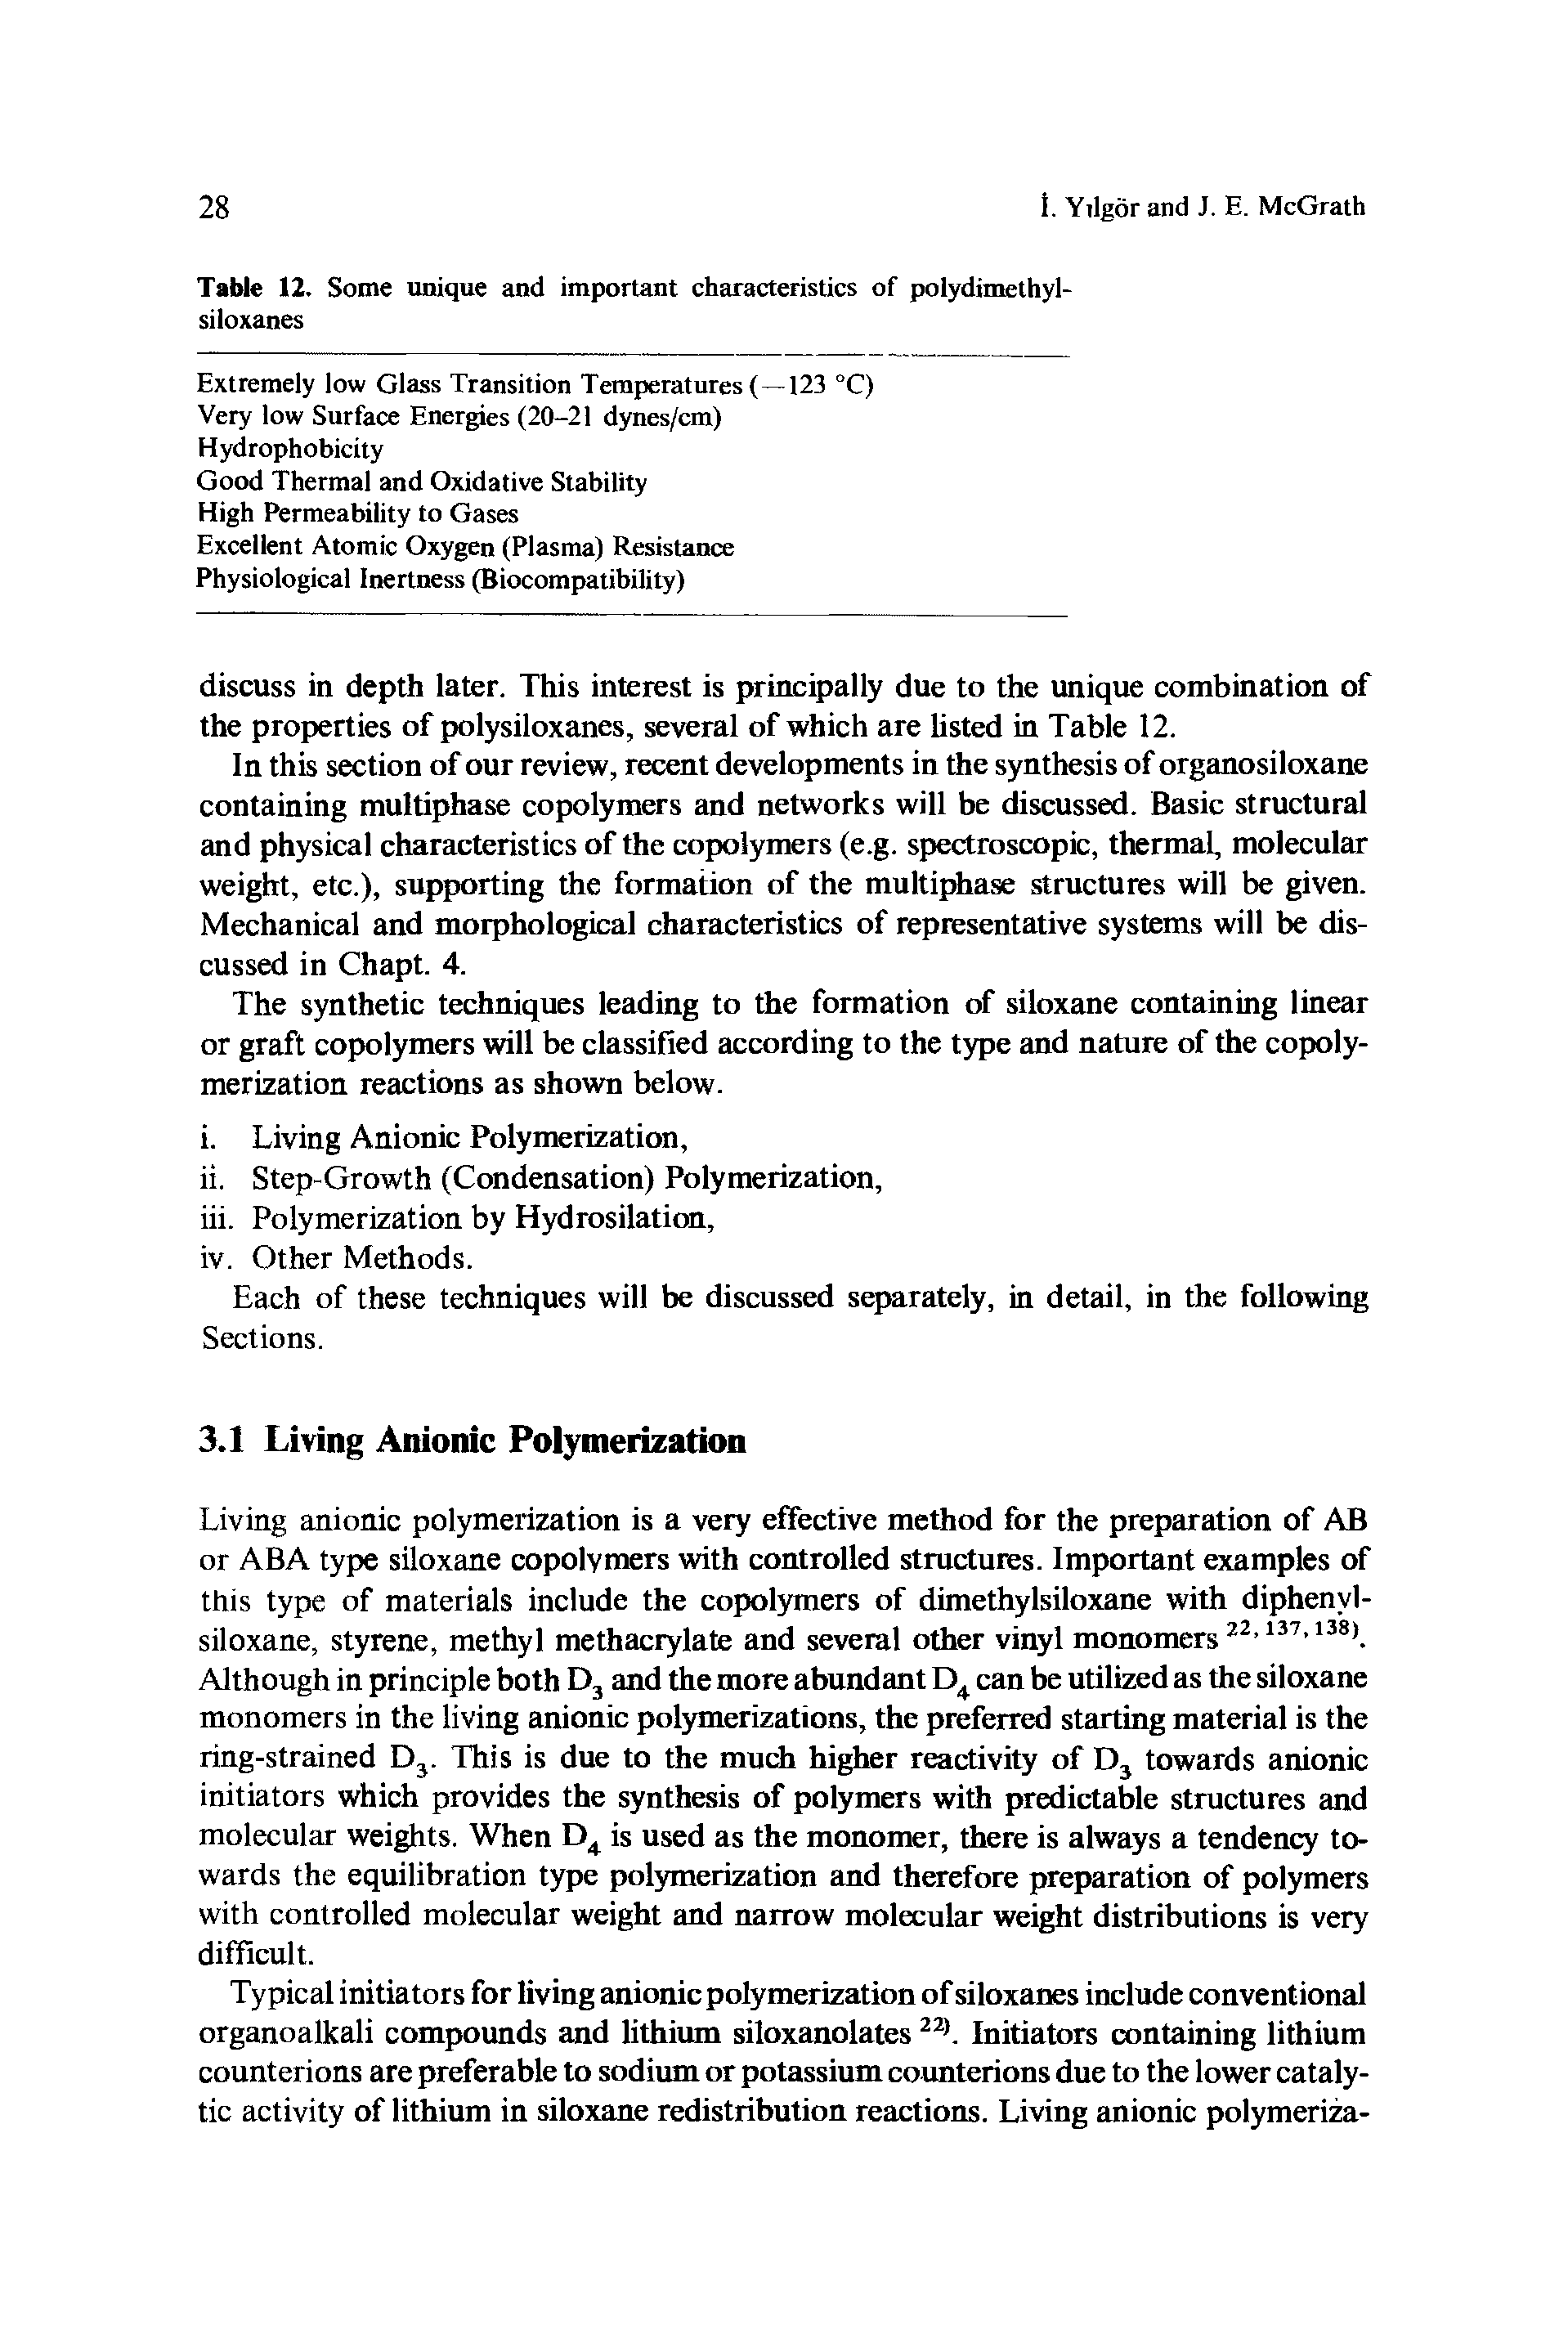 Table 12. Some unique and important characteristics of polydimethyl-siloxanes